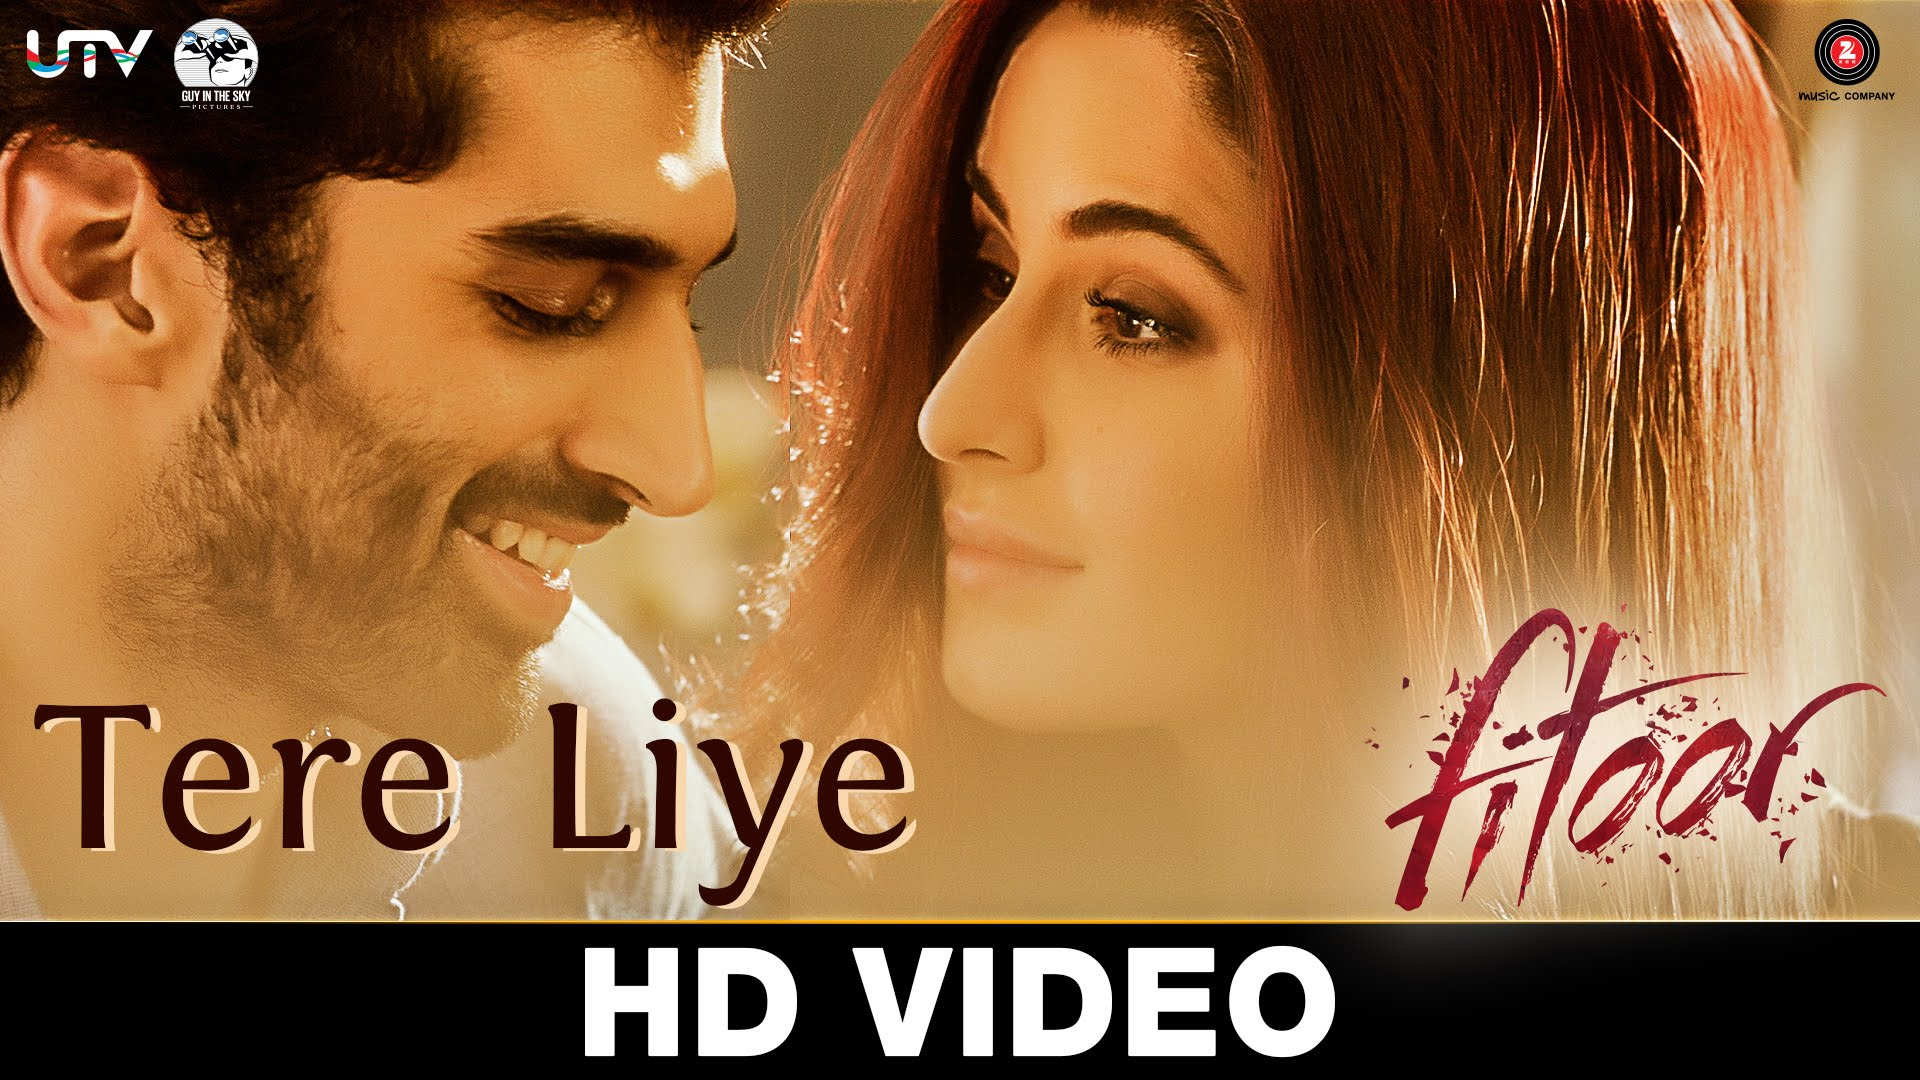 Watch Aditya Roy Kapoor and Katrina Kaif fall in love with 'Tere Liye'!